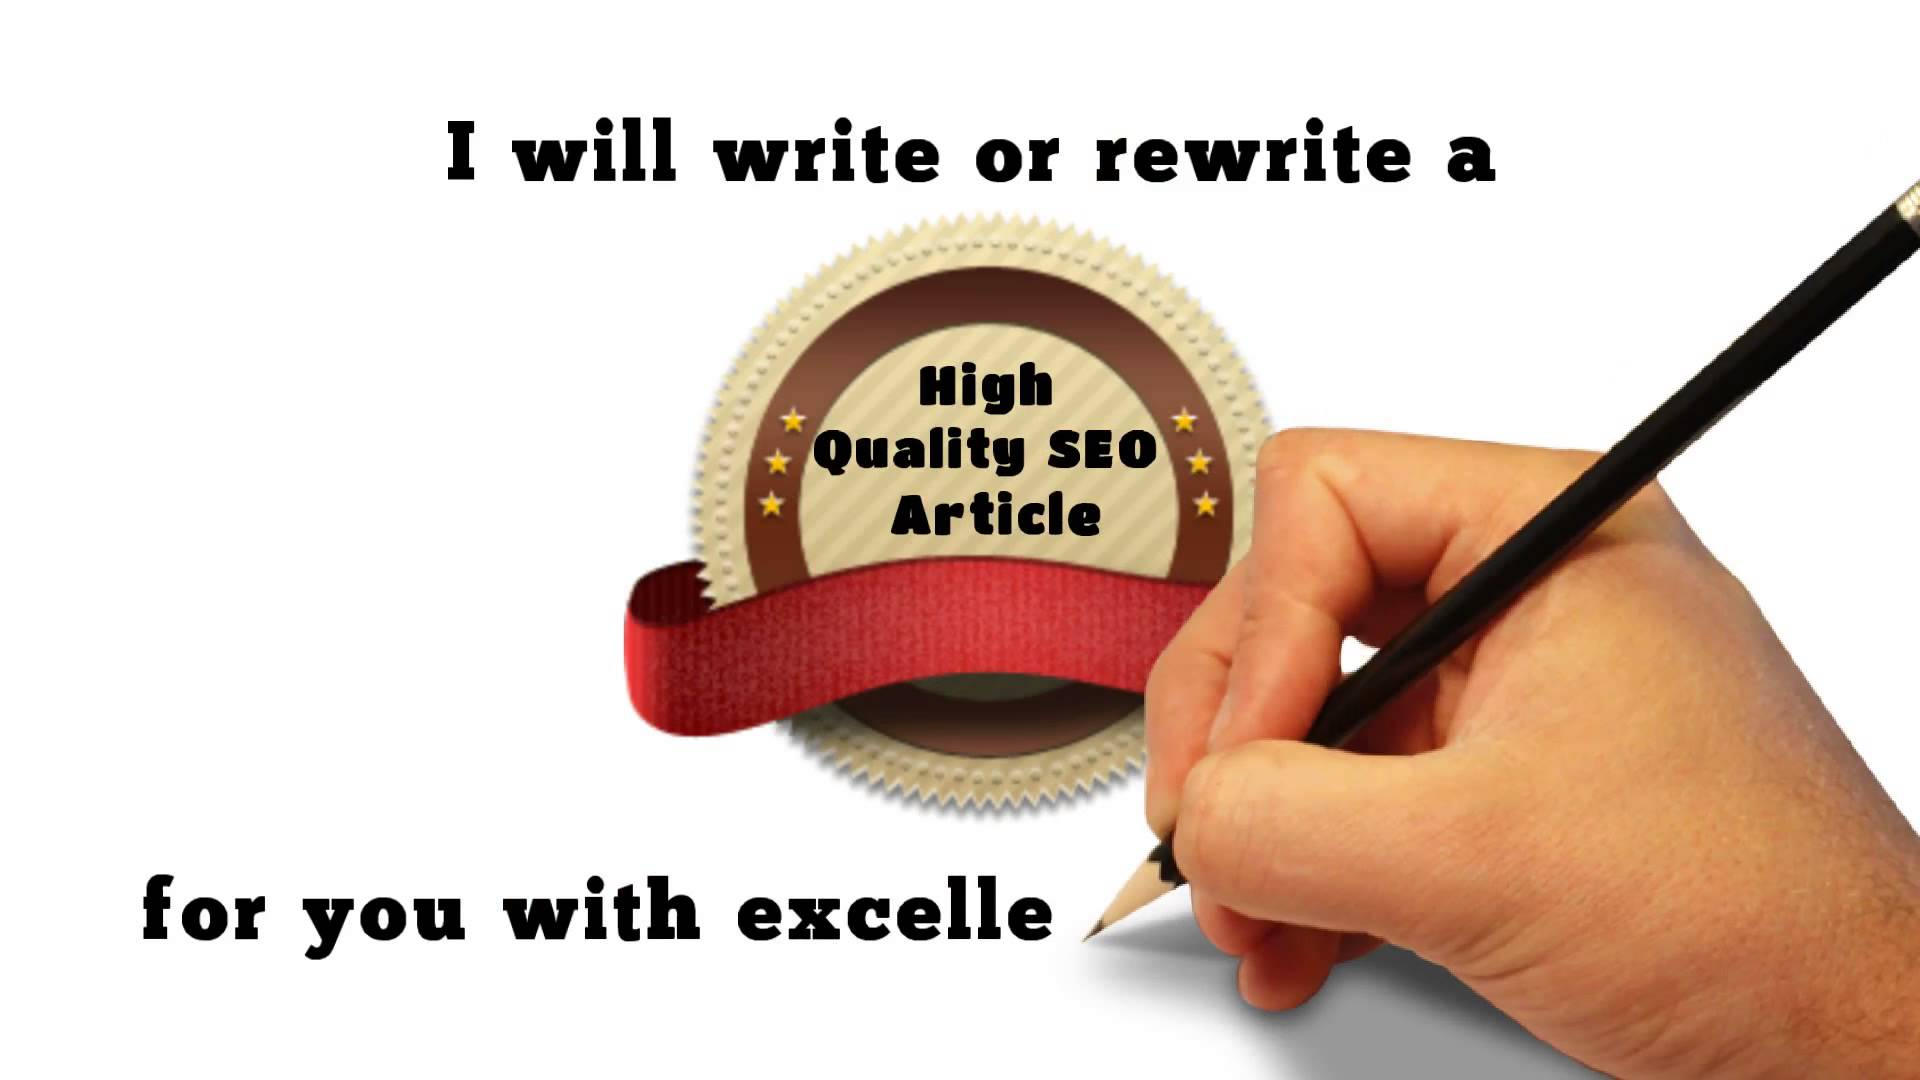 i can write upto 500 words article for you